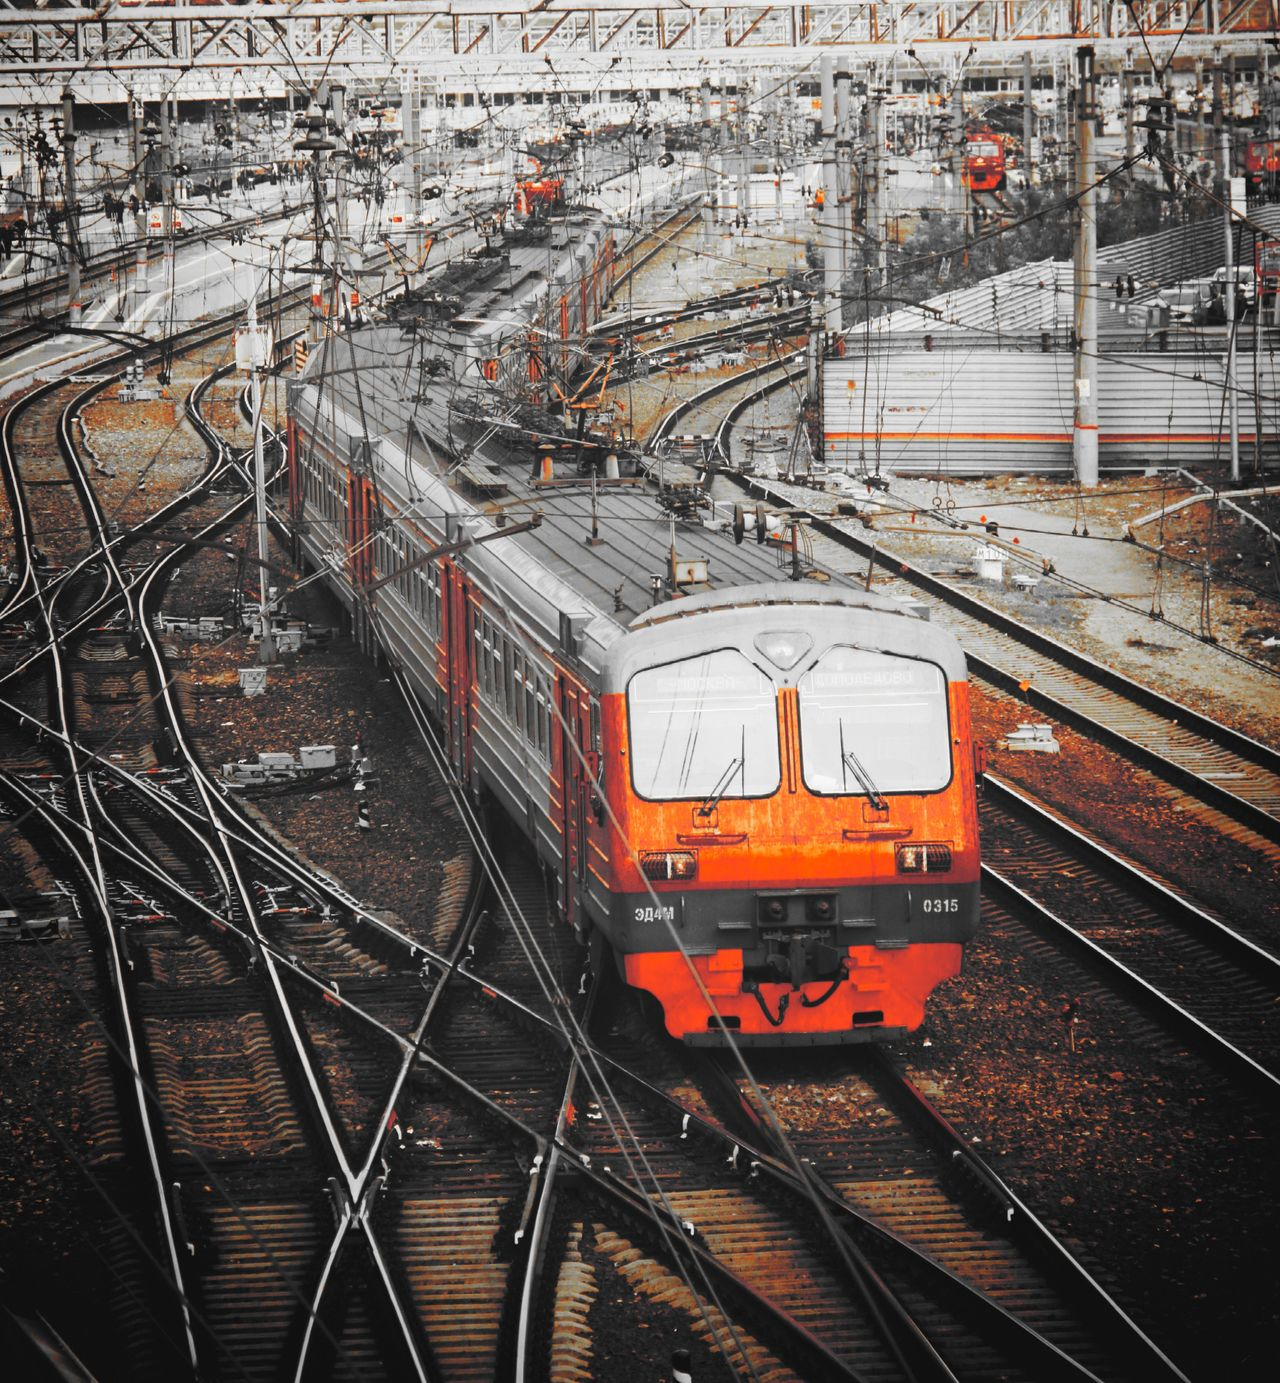 Transportation Train - Vehicle Rail Transportation Railroad Track High Angle View Public Transportation Travel Mode Of Transport Locomotive City Horizontal Outdoors Day Train Station Autumn Black,whiteandred Transportation City Russia россия Москва Павелецкий вокзал Москвы